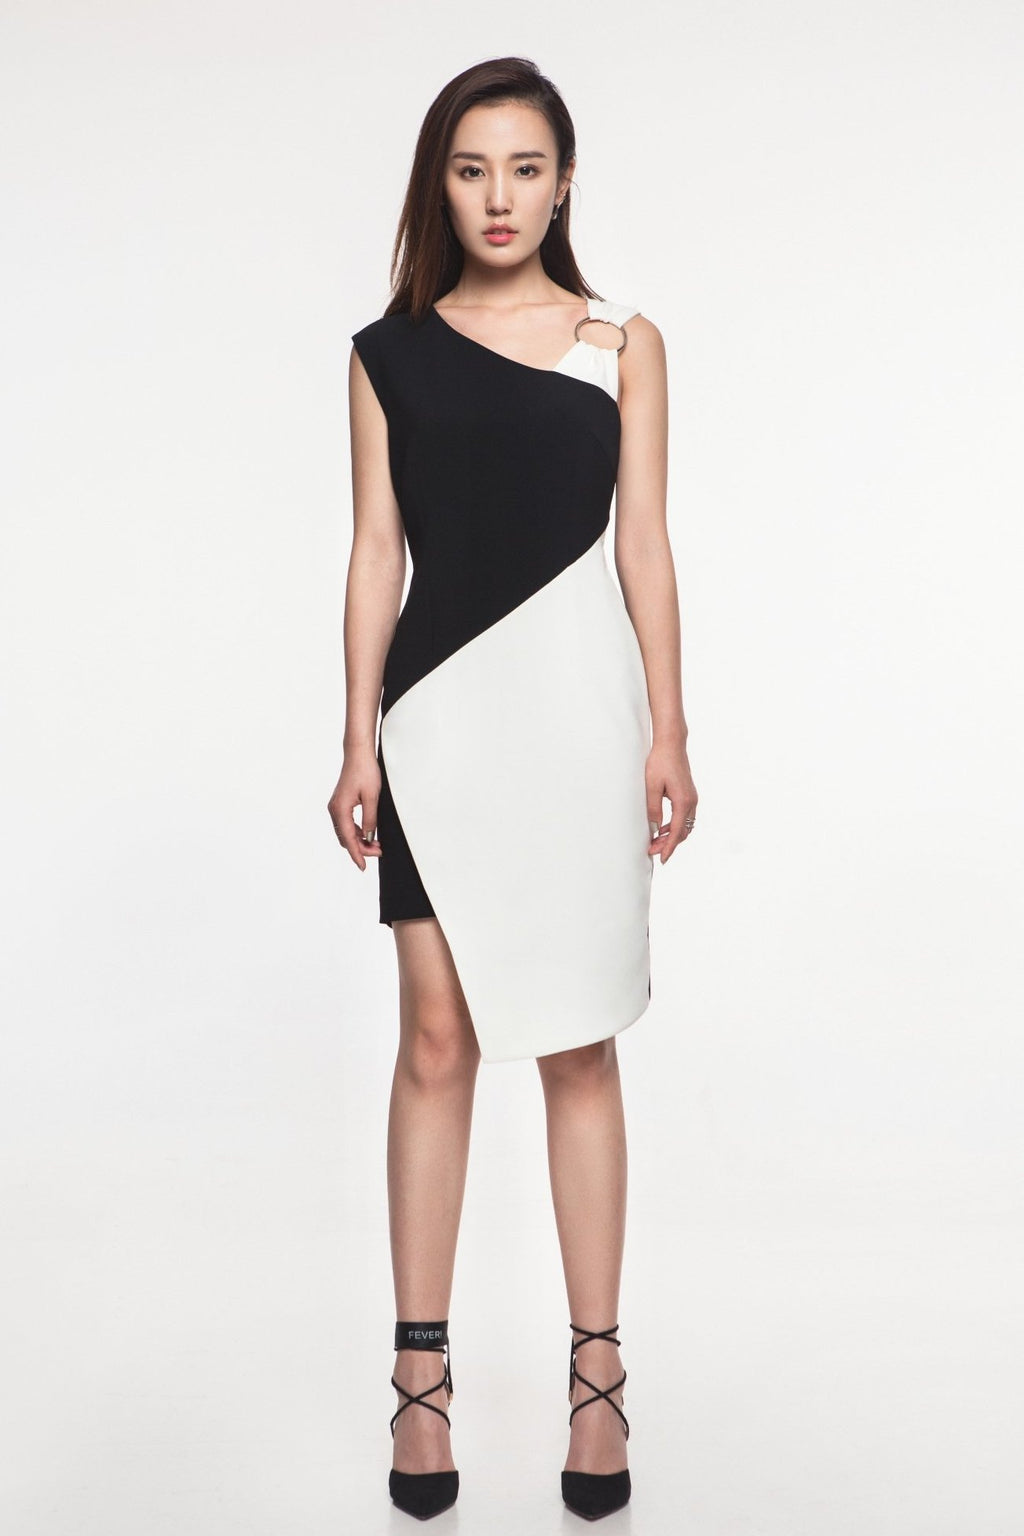 FEVER WANG asymmetric black and white dress